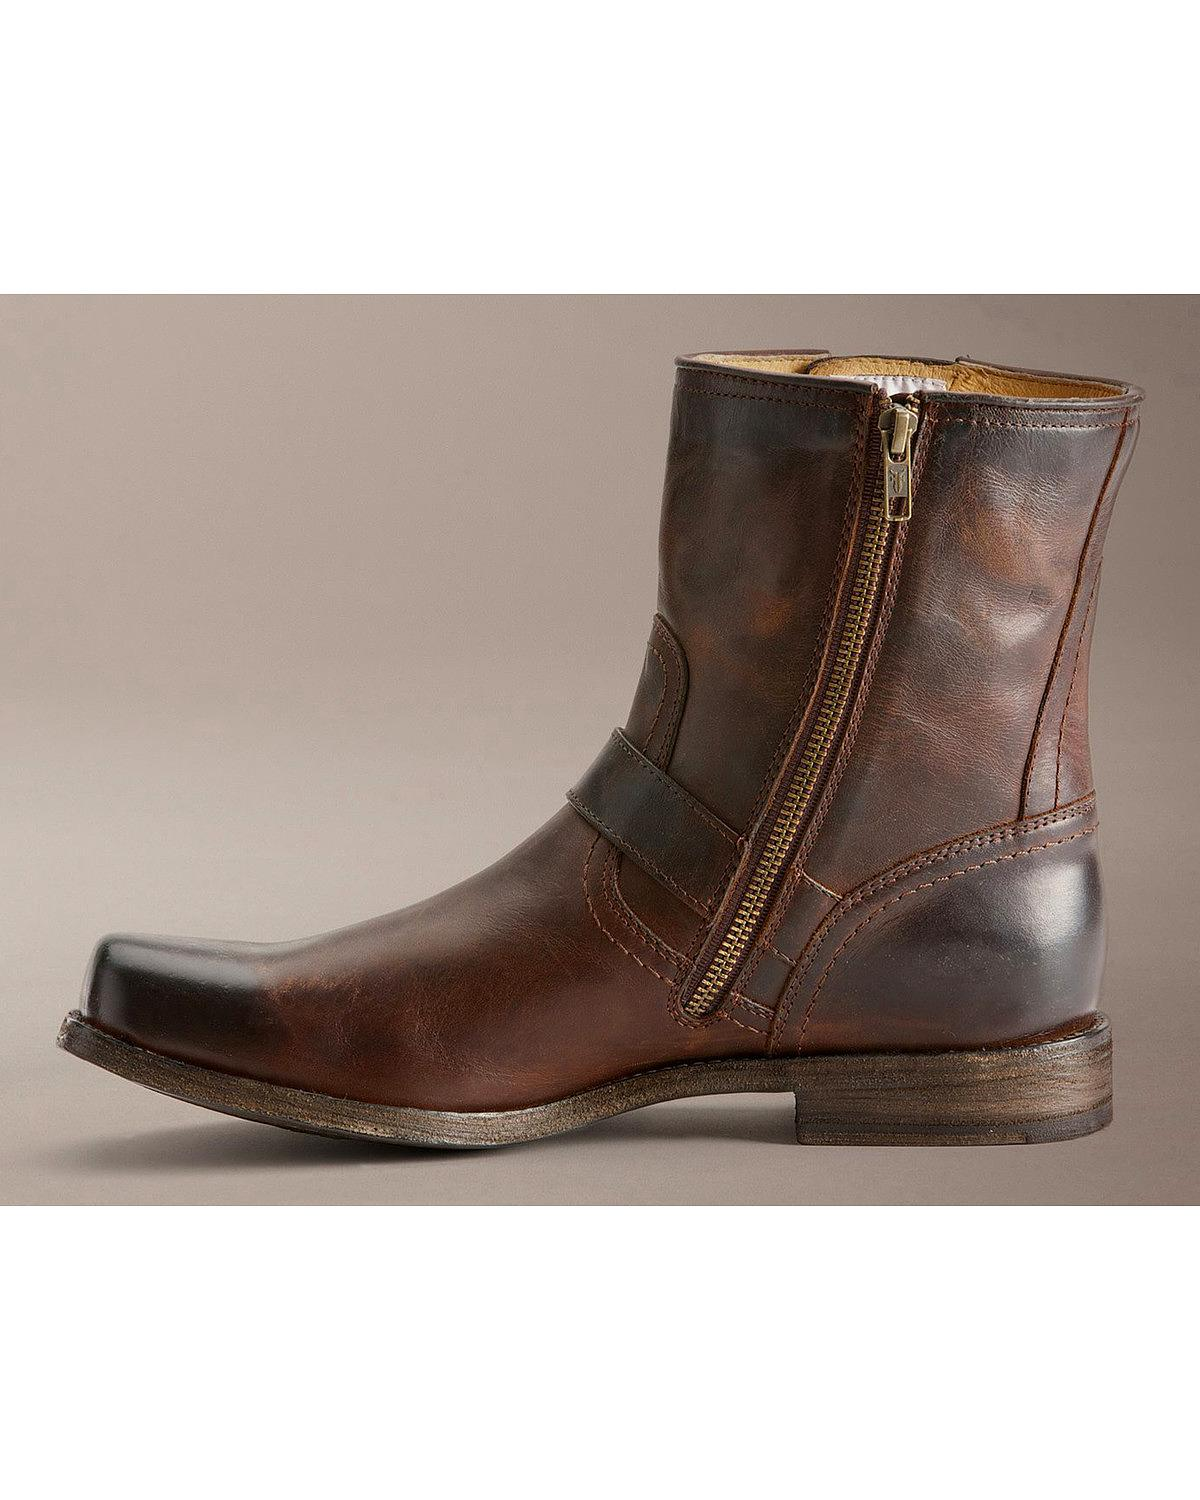 Frye-Smith-Engineer-Boot-87077-TAN